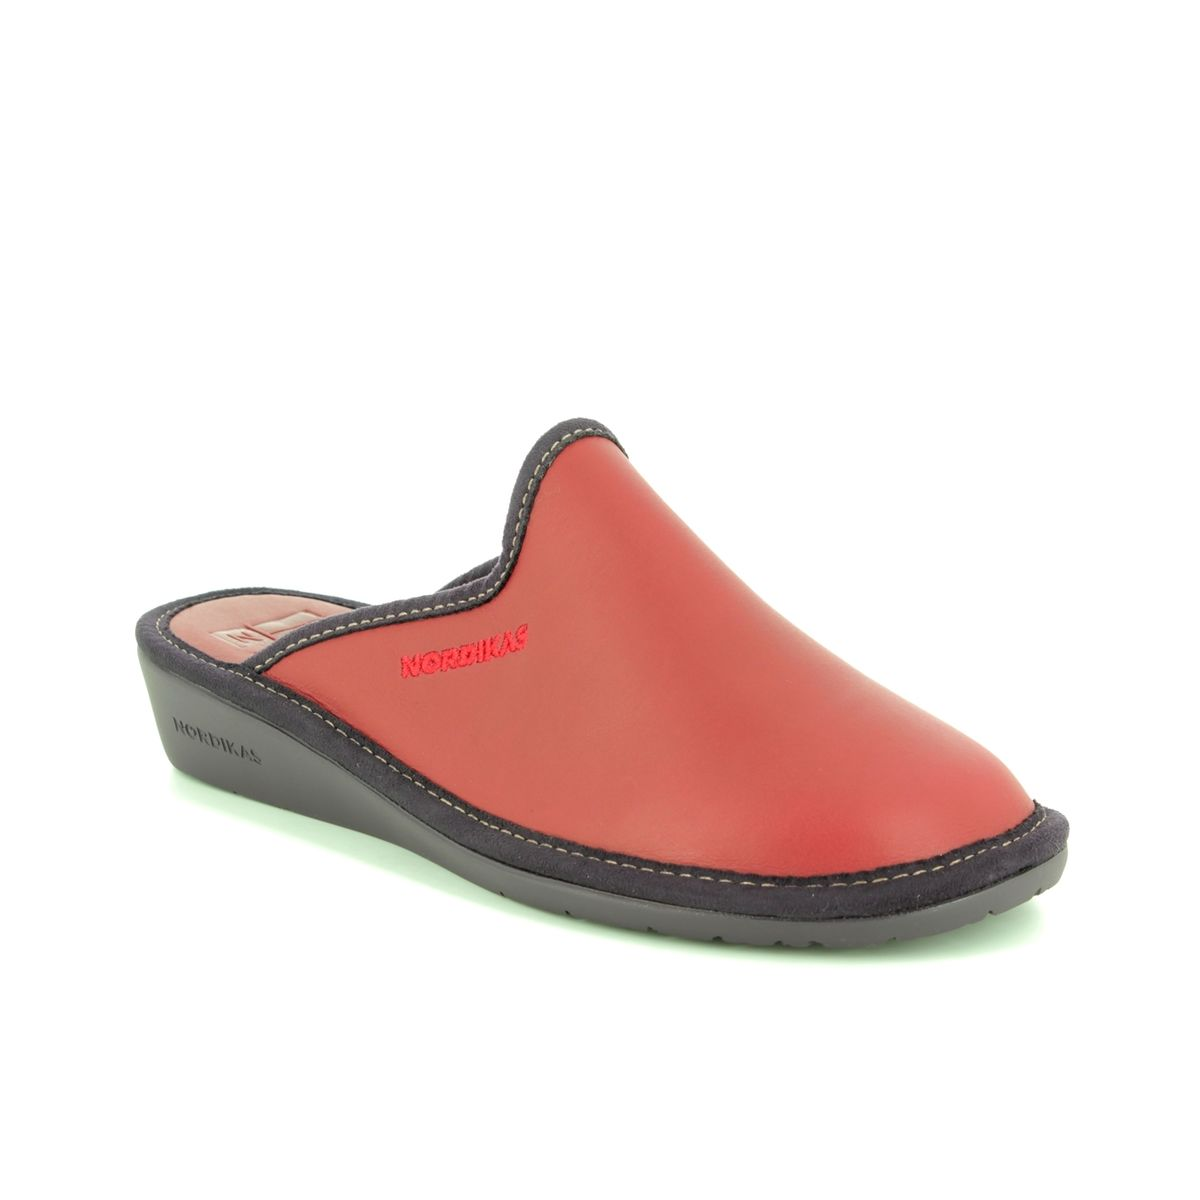 dd33a8ce09bc7 Nordikas Slipper Mules - Red leather - 347 8 MULEA 82